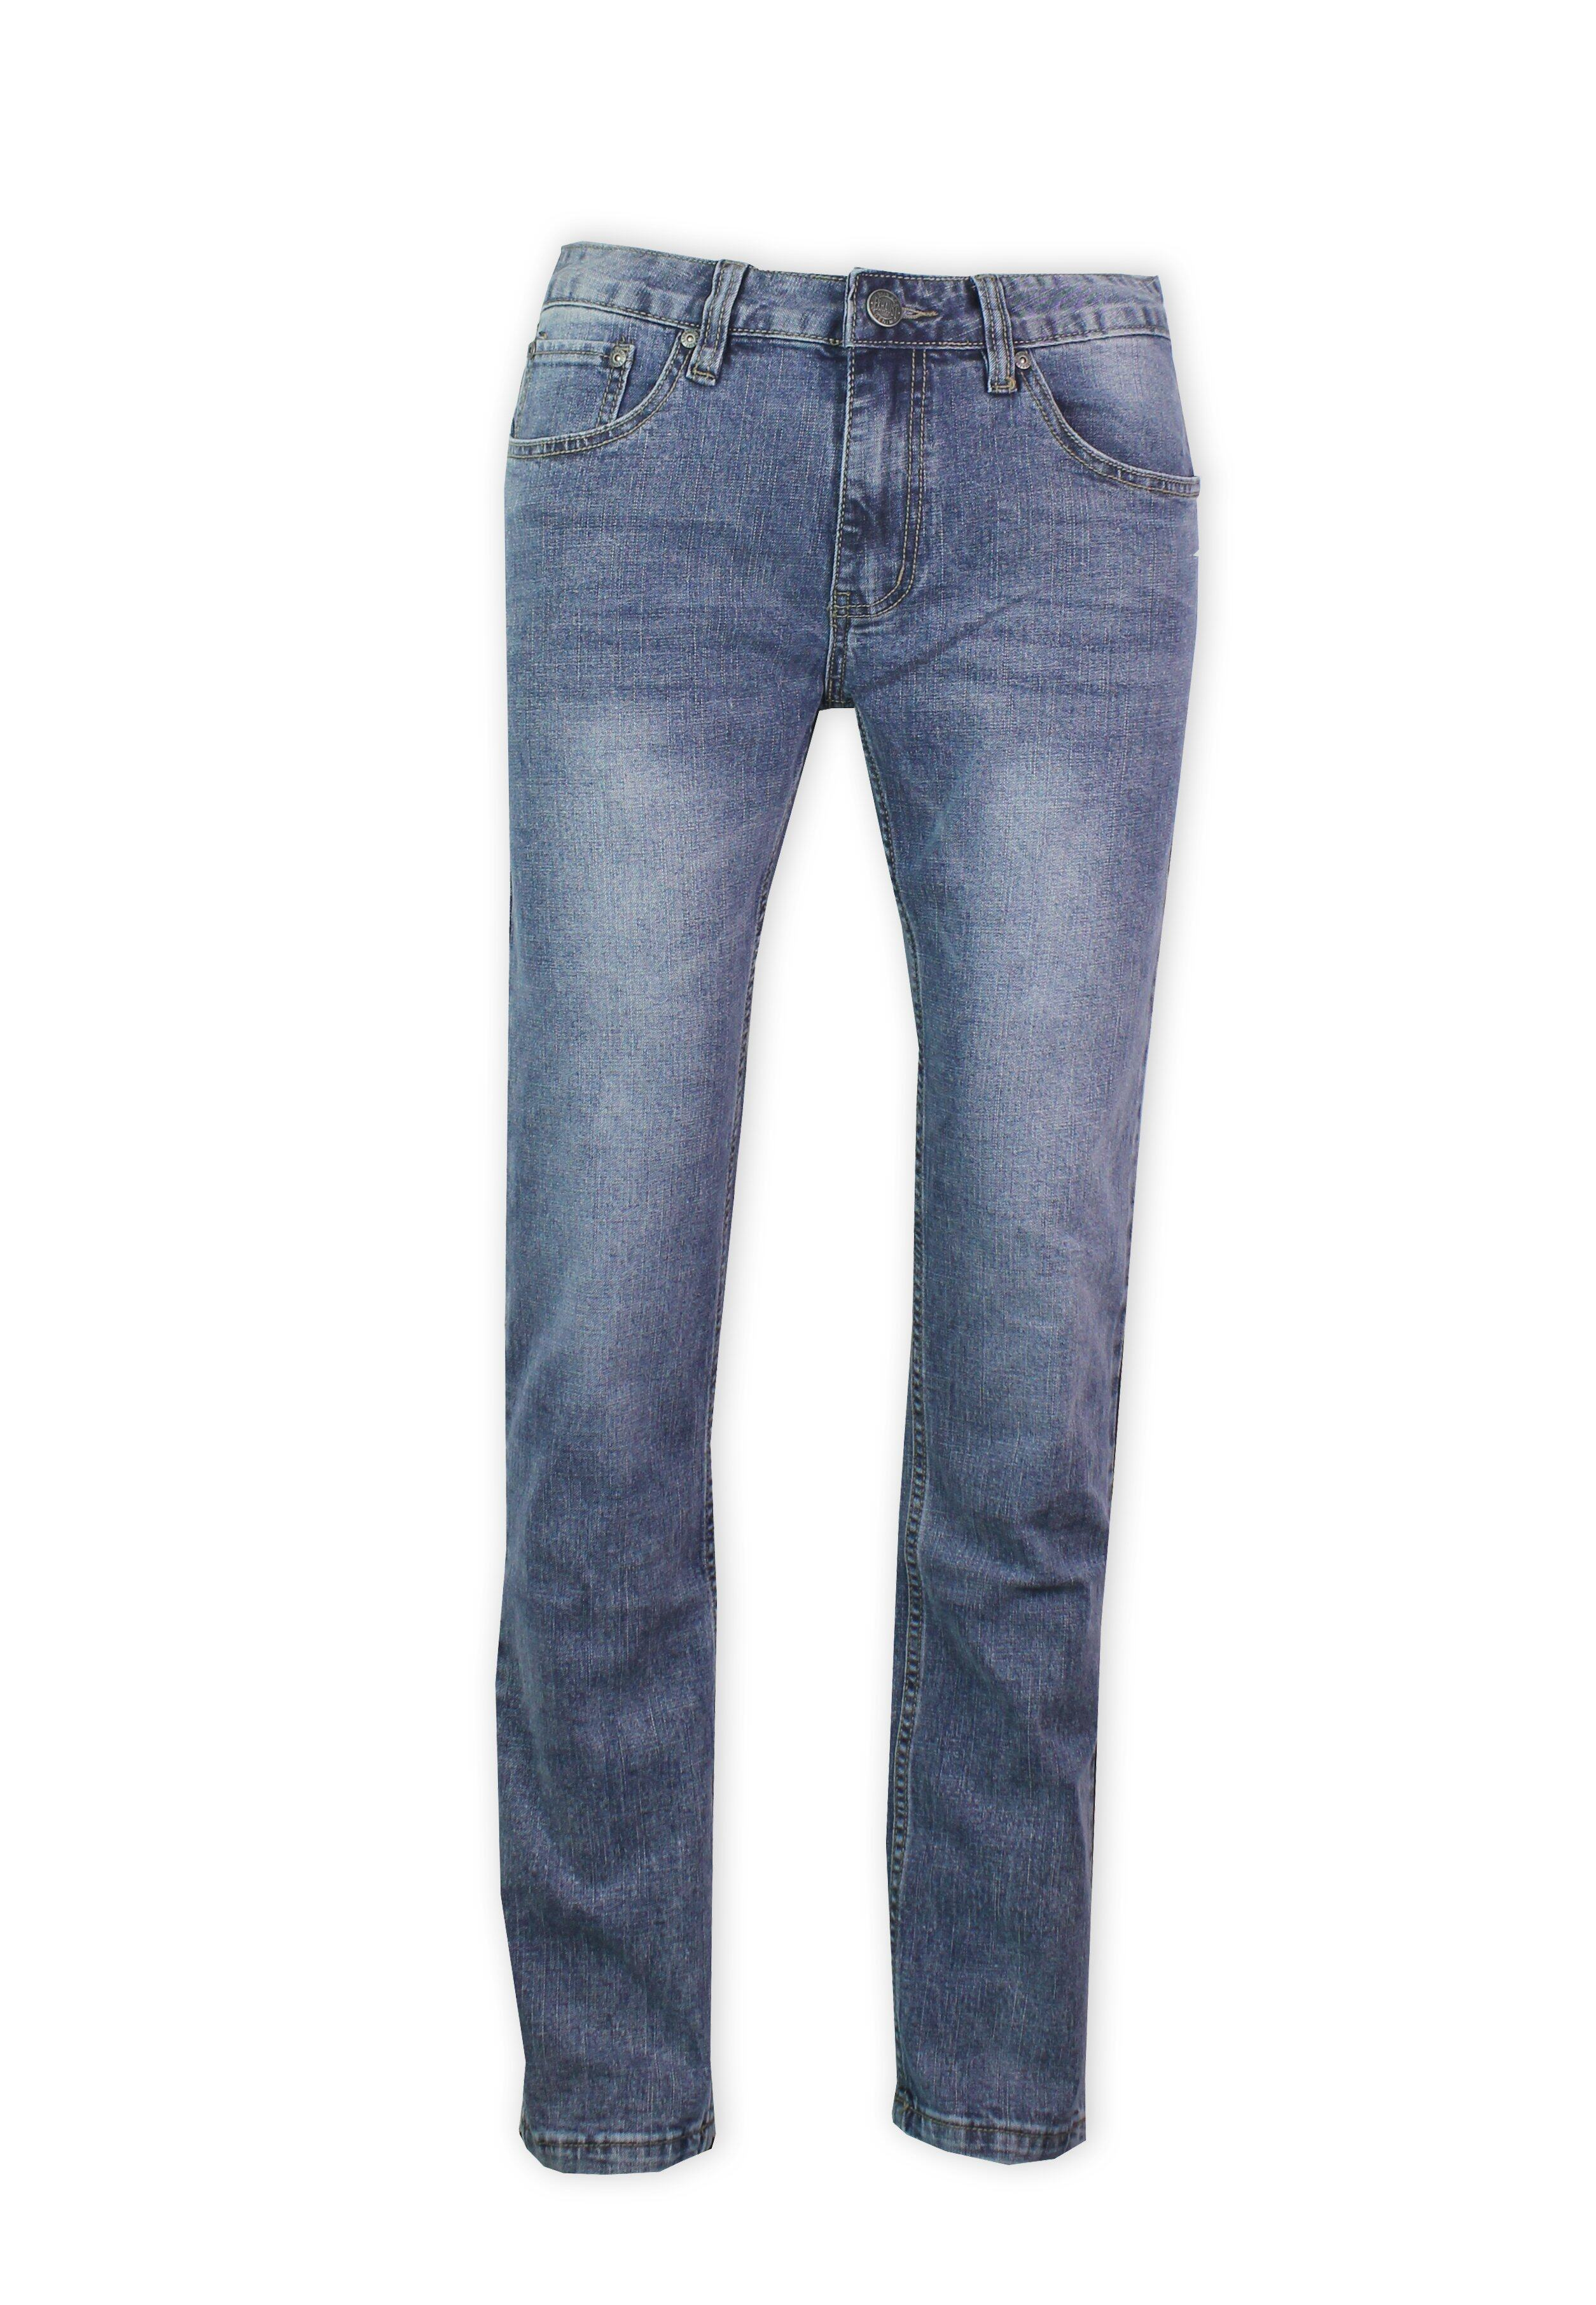 Exhaust Stretch Skinny Fit Jeans 991